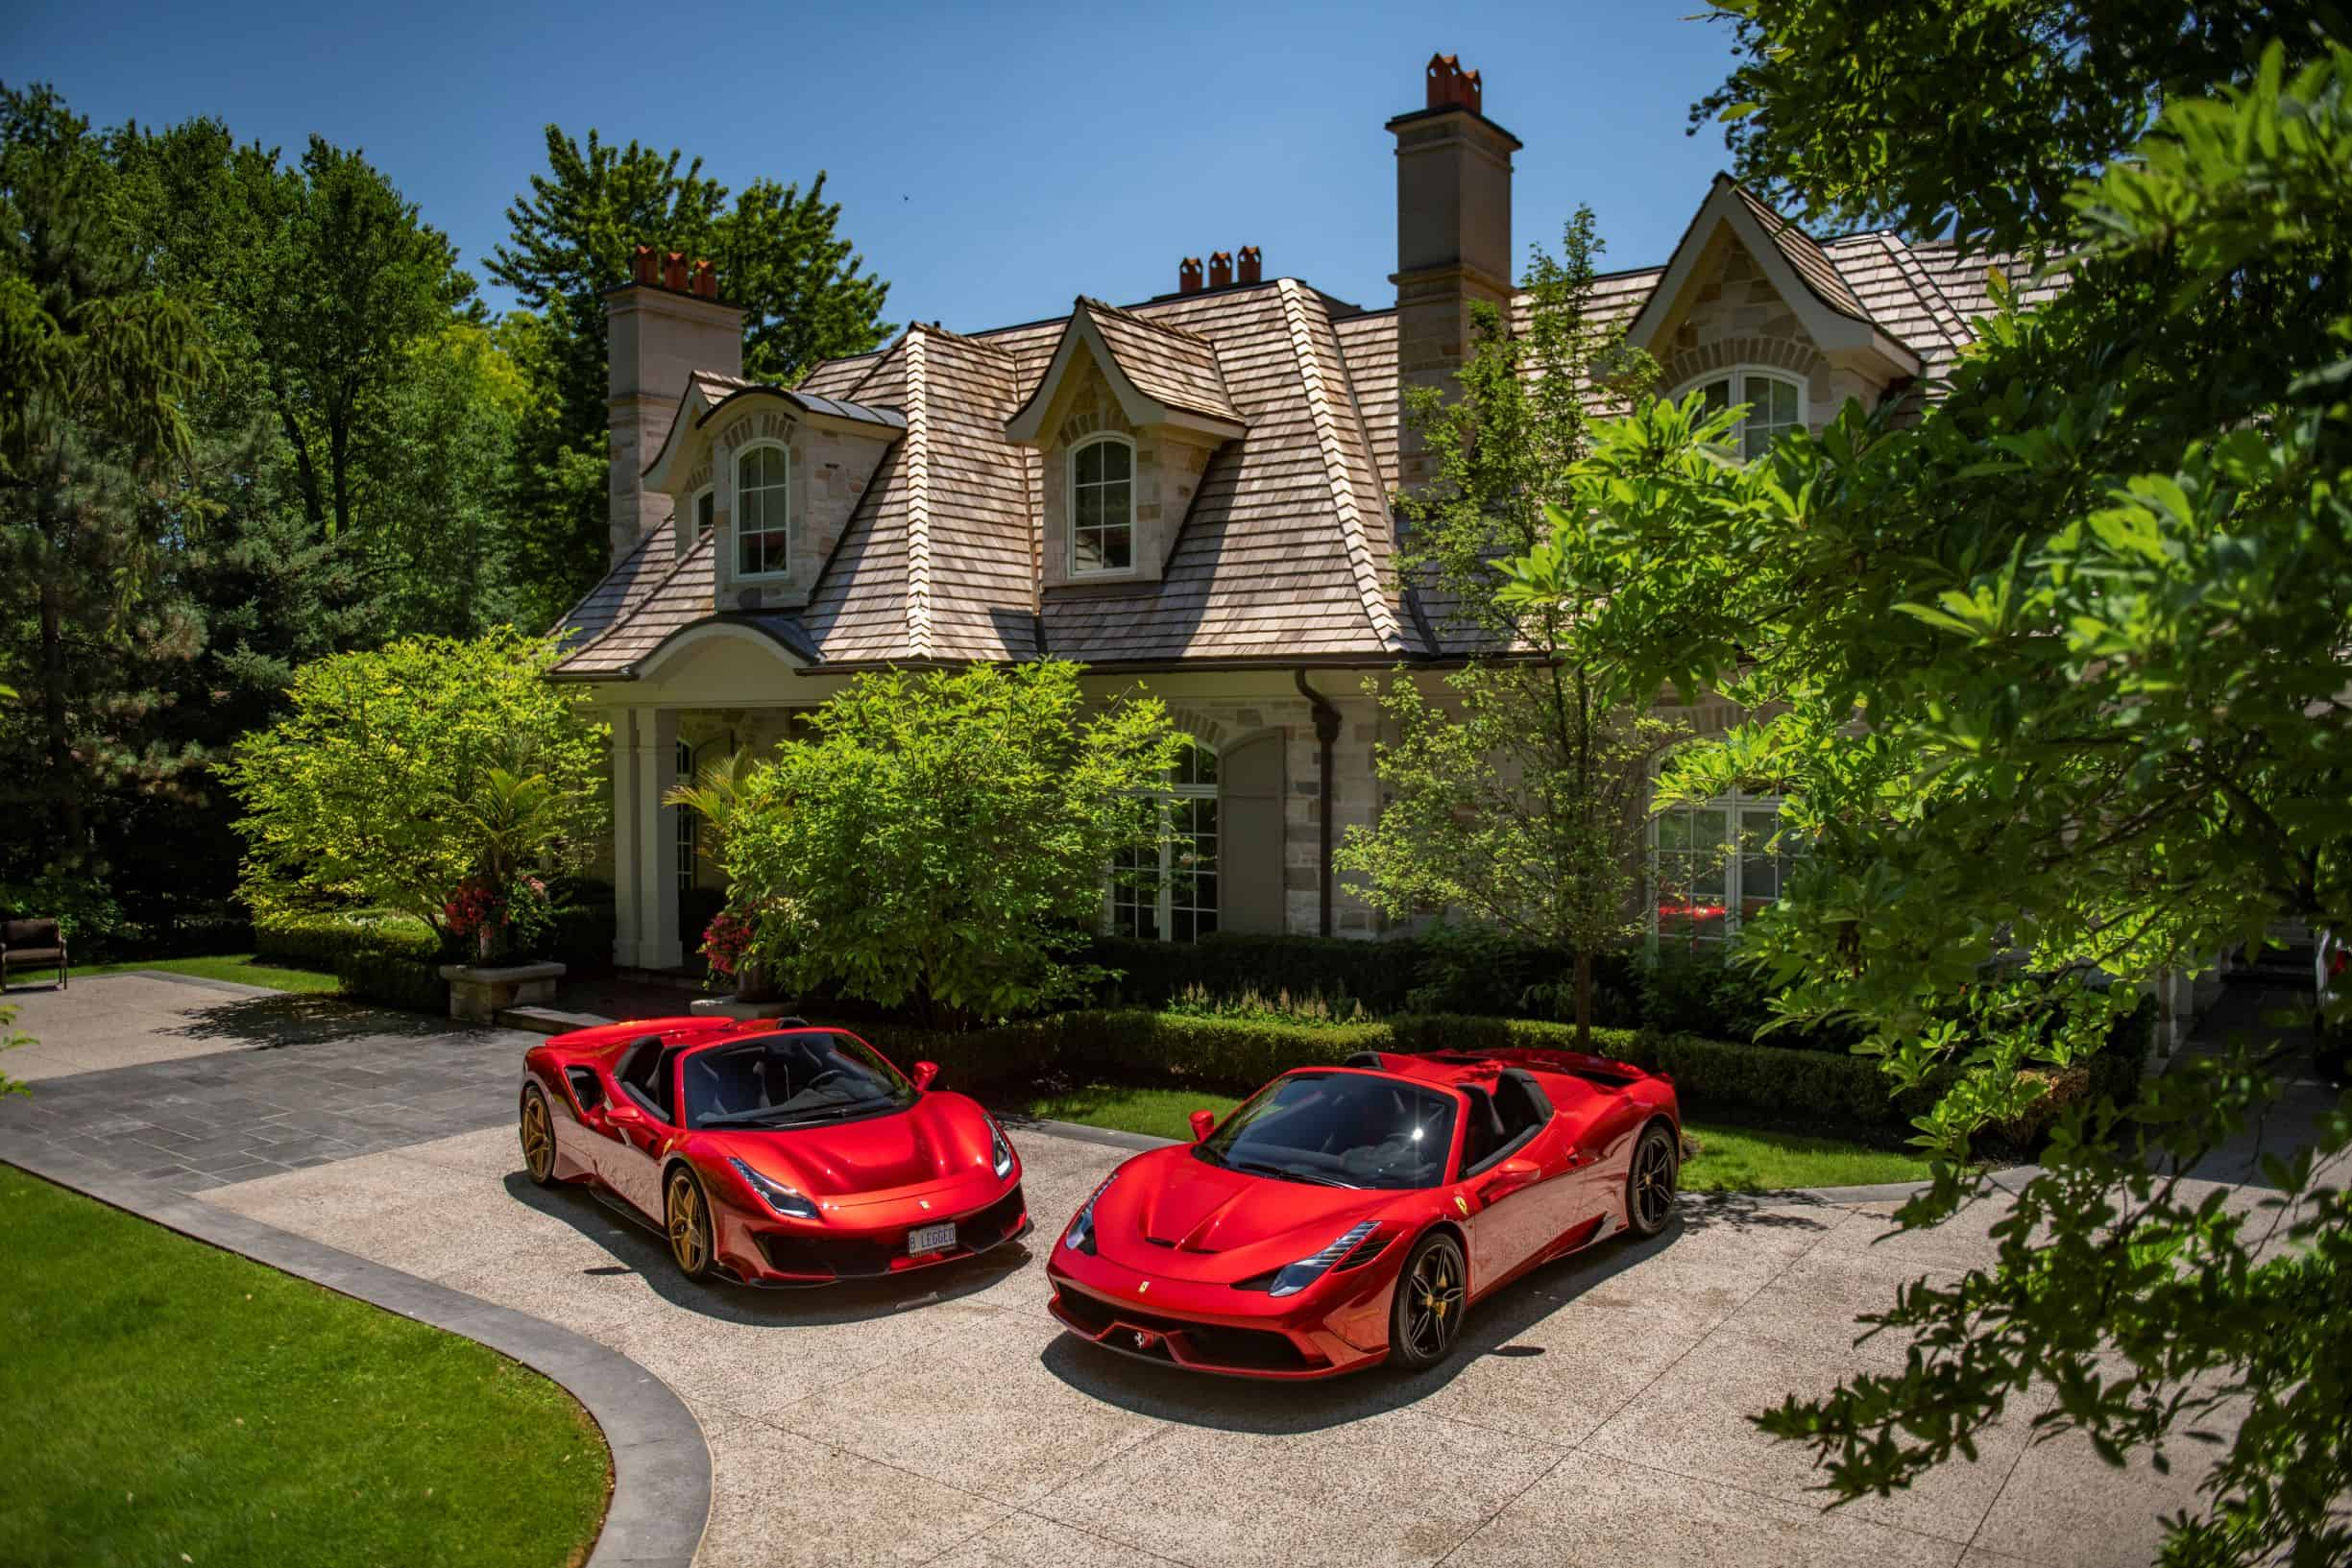 Ferraris photographed by Scarfone